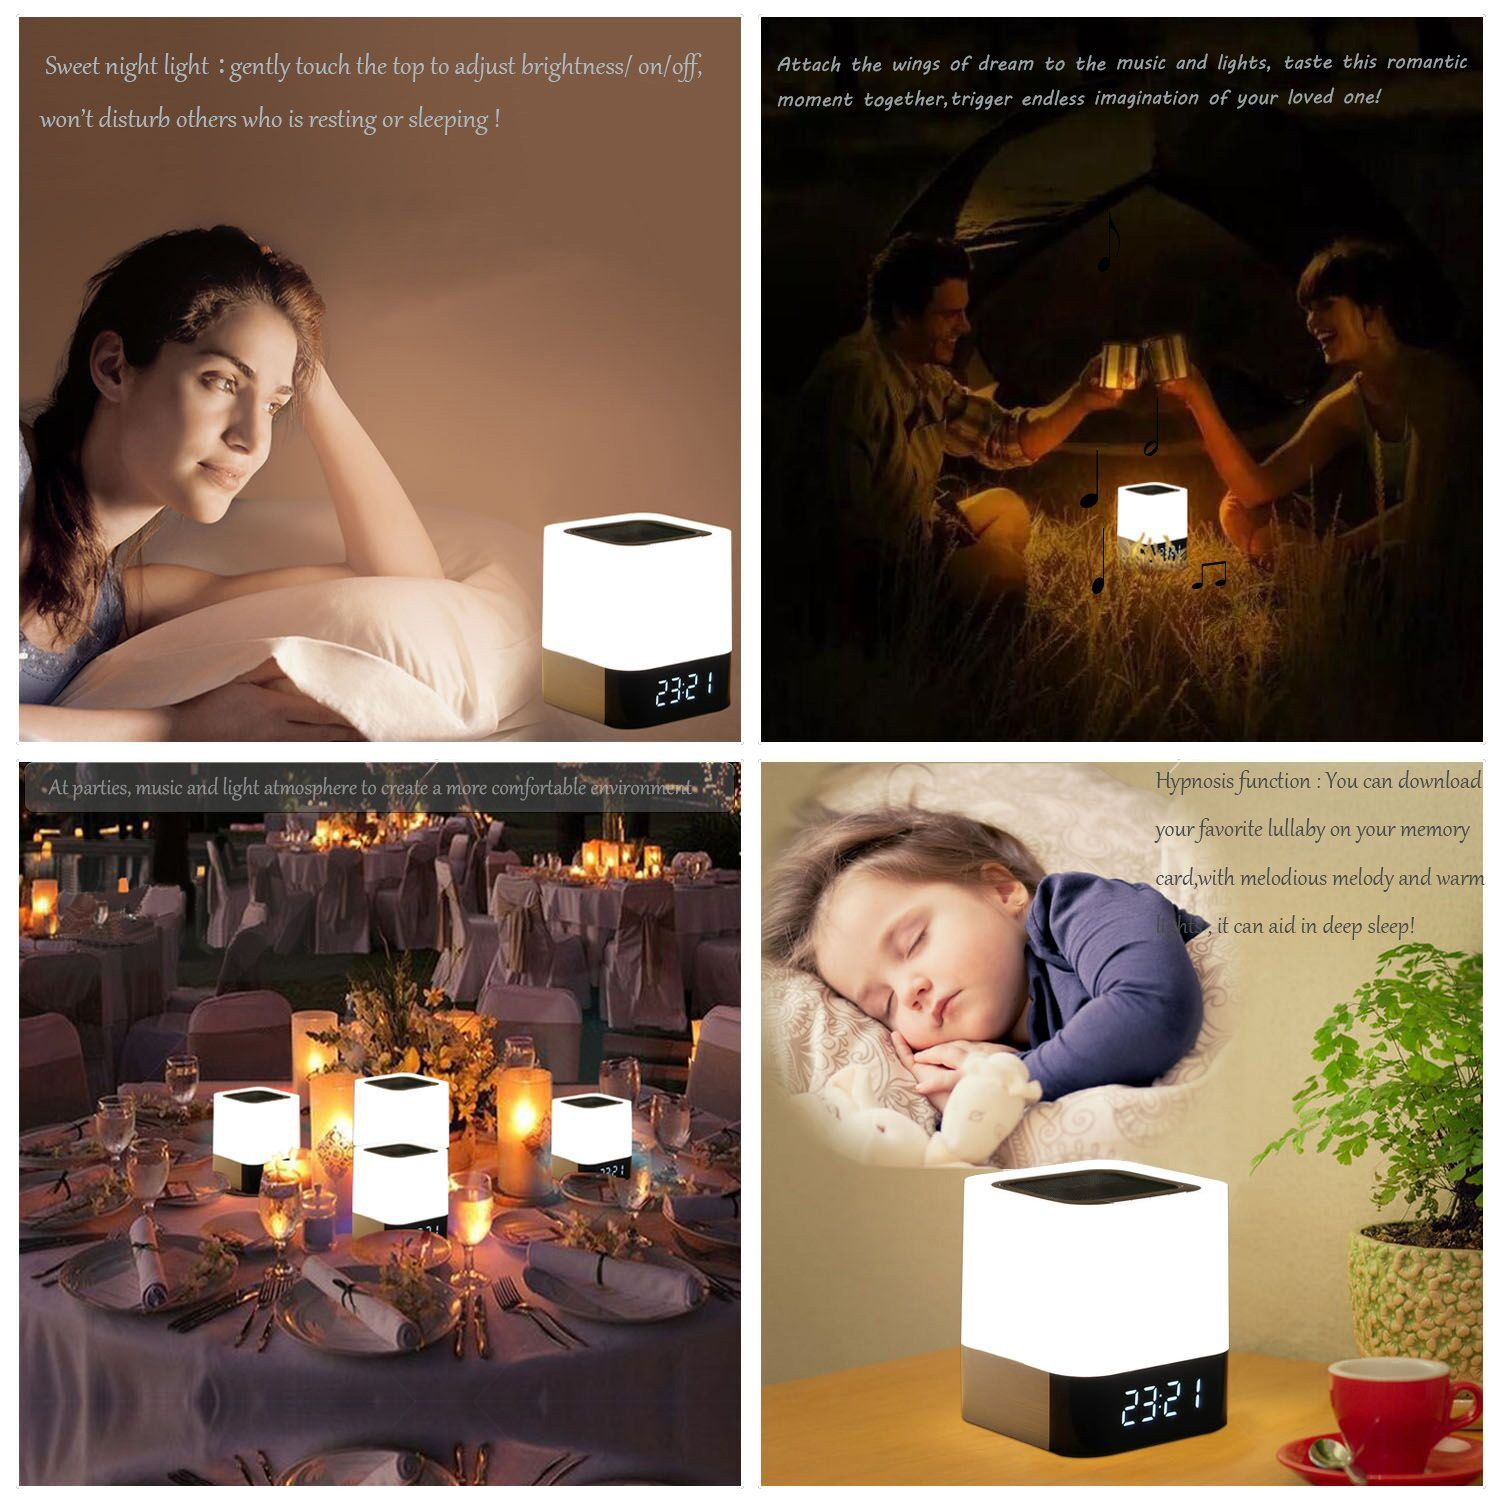 WamGra Night light Bluetooth Speaker,Alarm Clock Bluetooth Speaker Touch Control 48 Led Changing Color Bedside lamp,MP3 Player Portable Wireless Speaker with Lights Gift for Women Men Kids Teens Girl